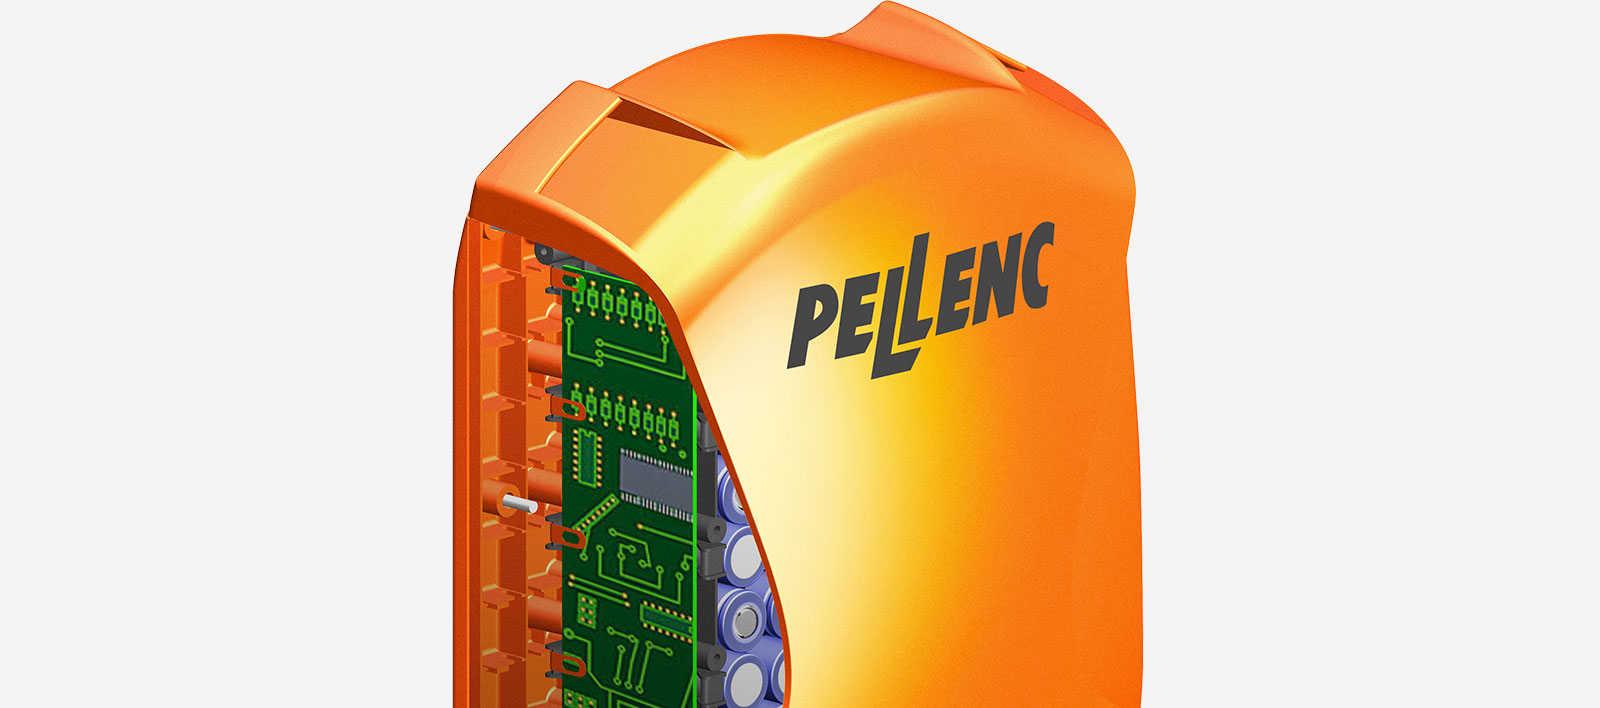 Pellenc-Batteries-UliB-Electronique